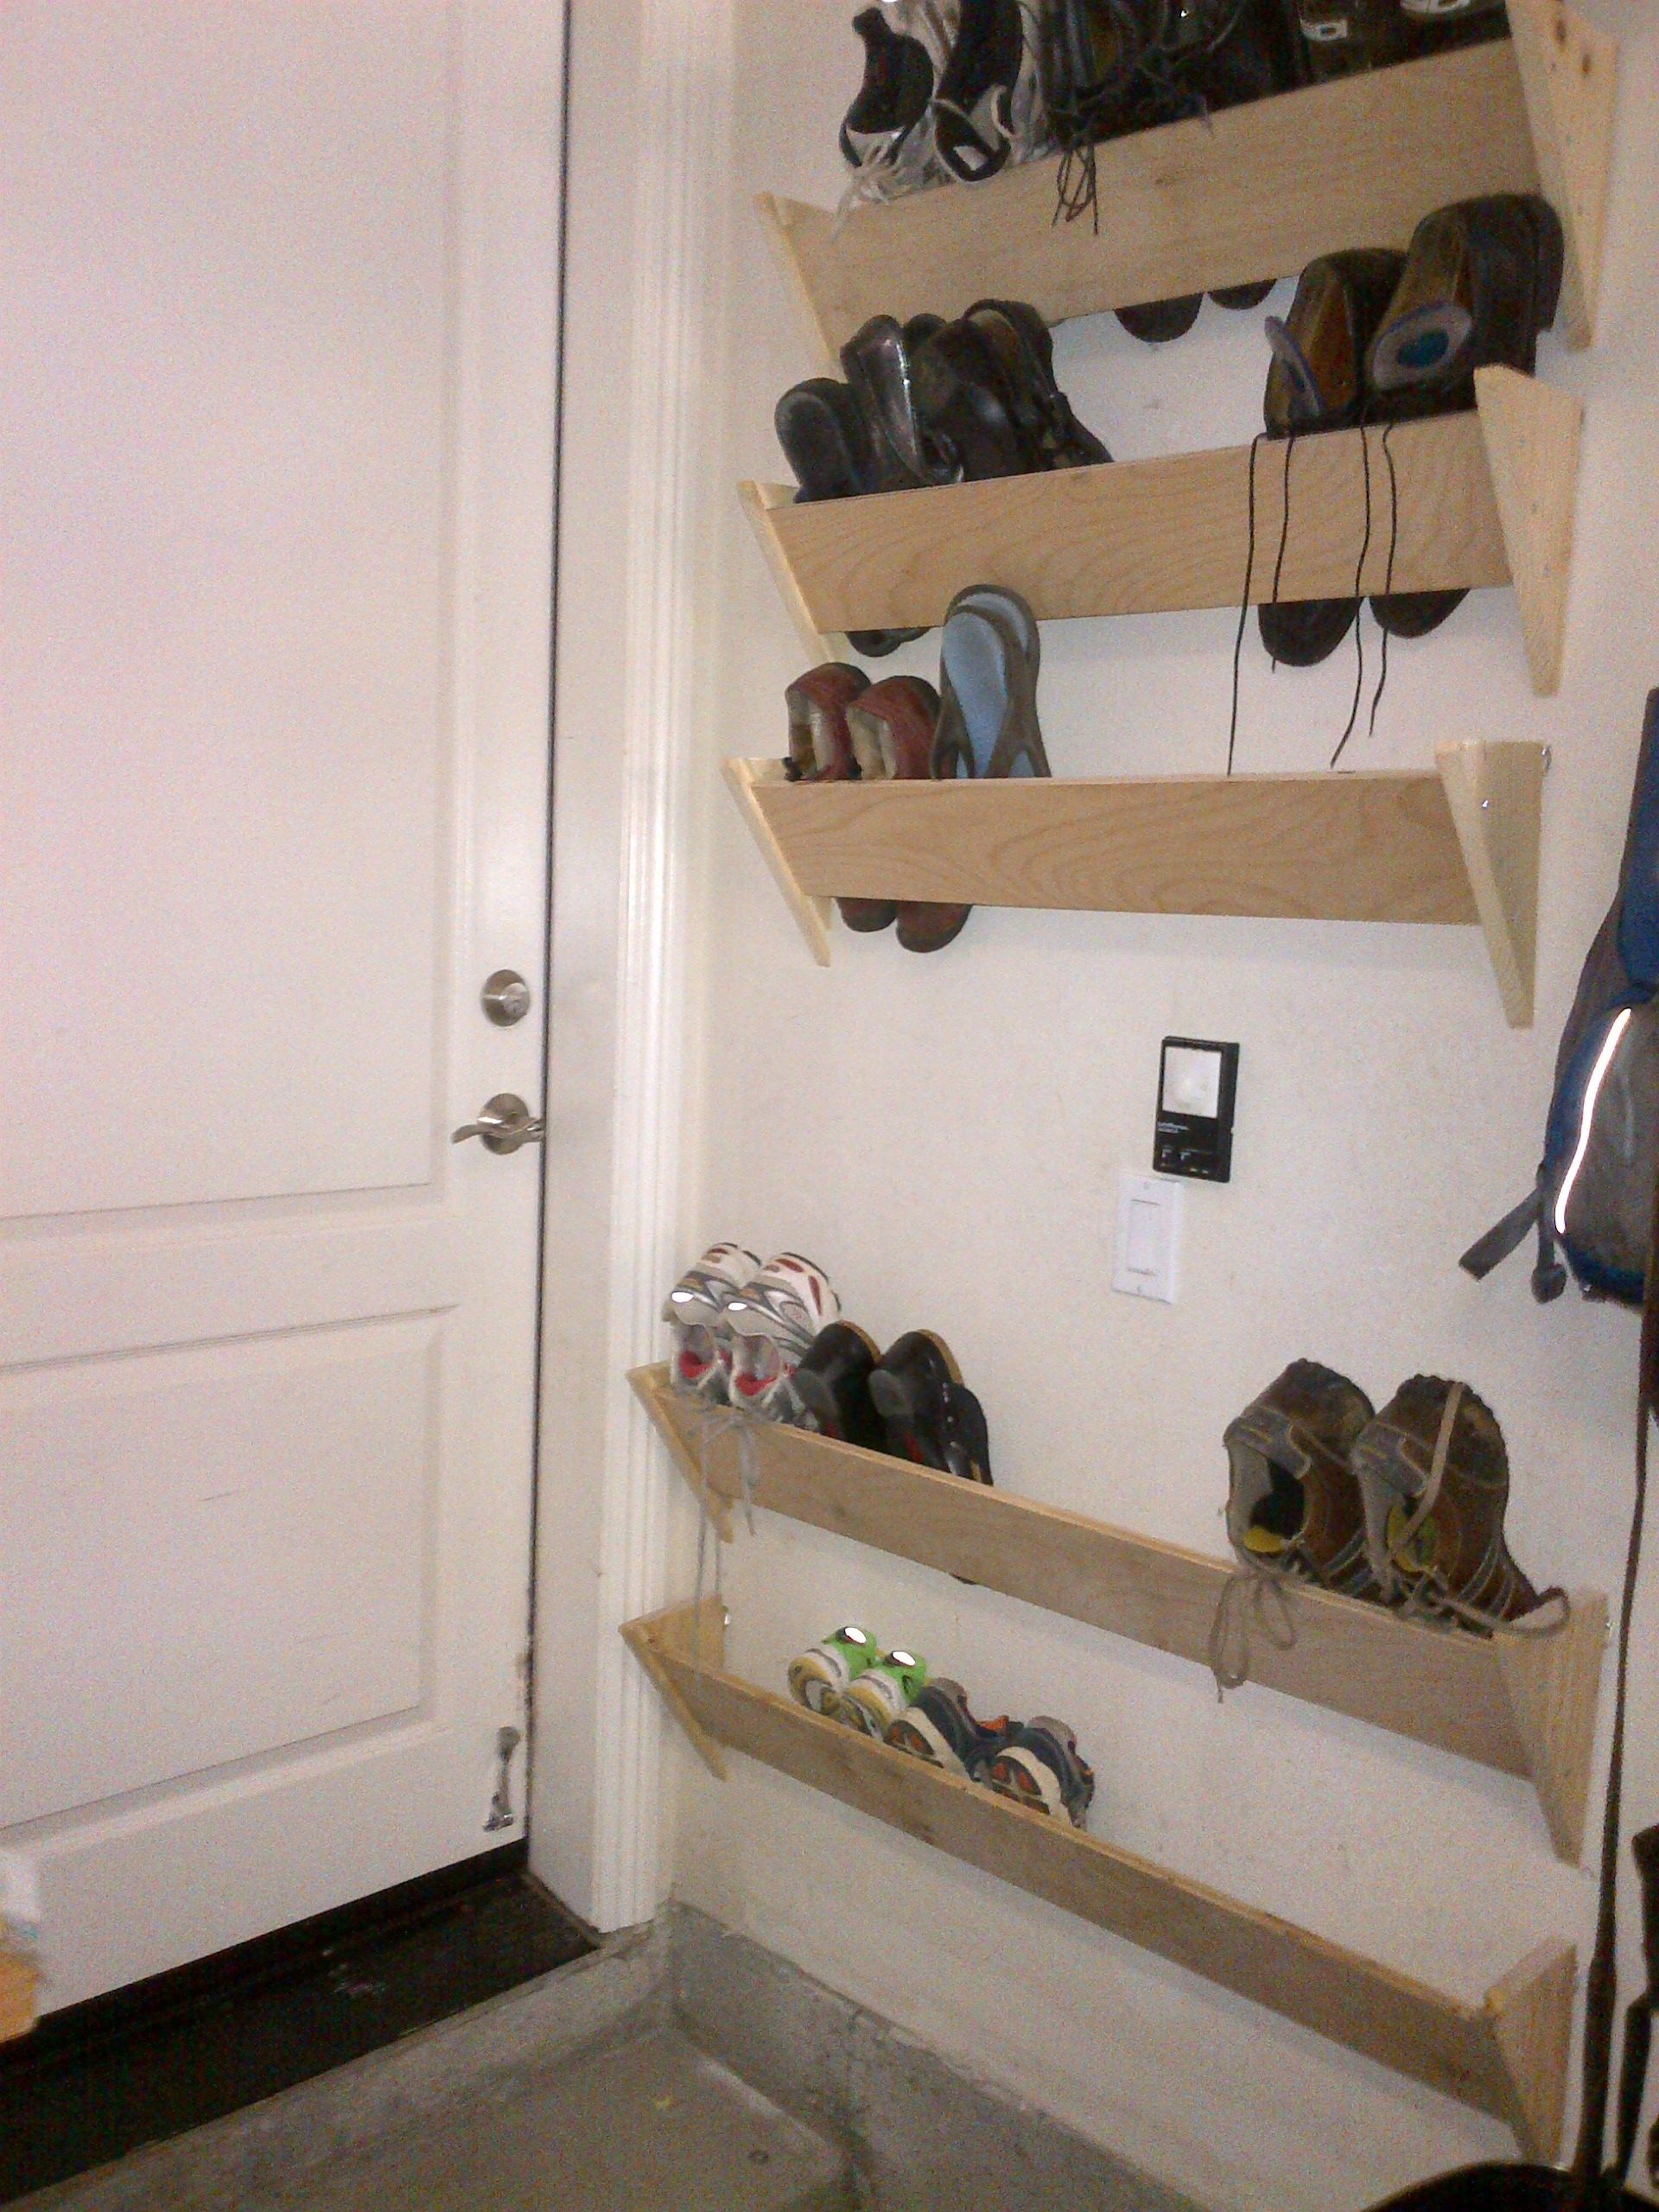 Homemade Shoe Racks For Our Garage Walls By The House Entrance